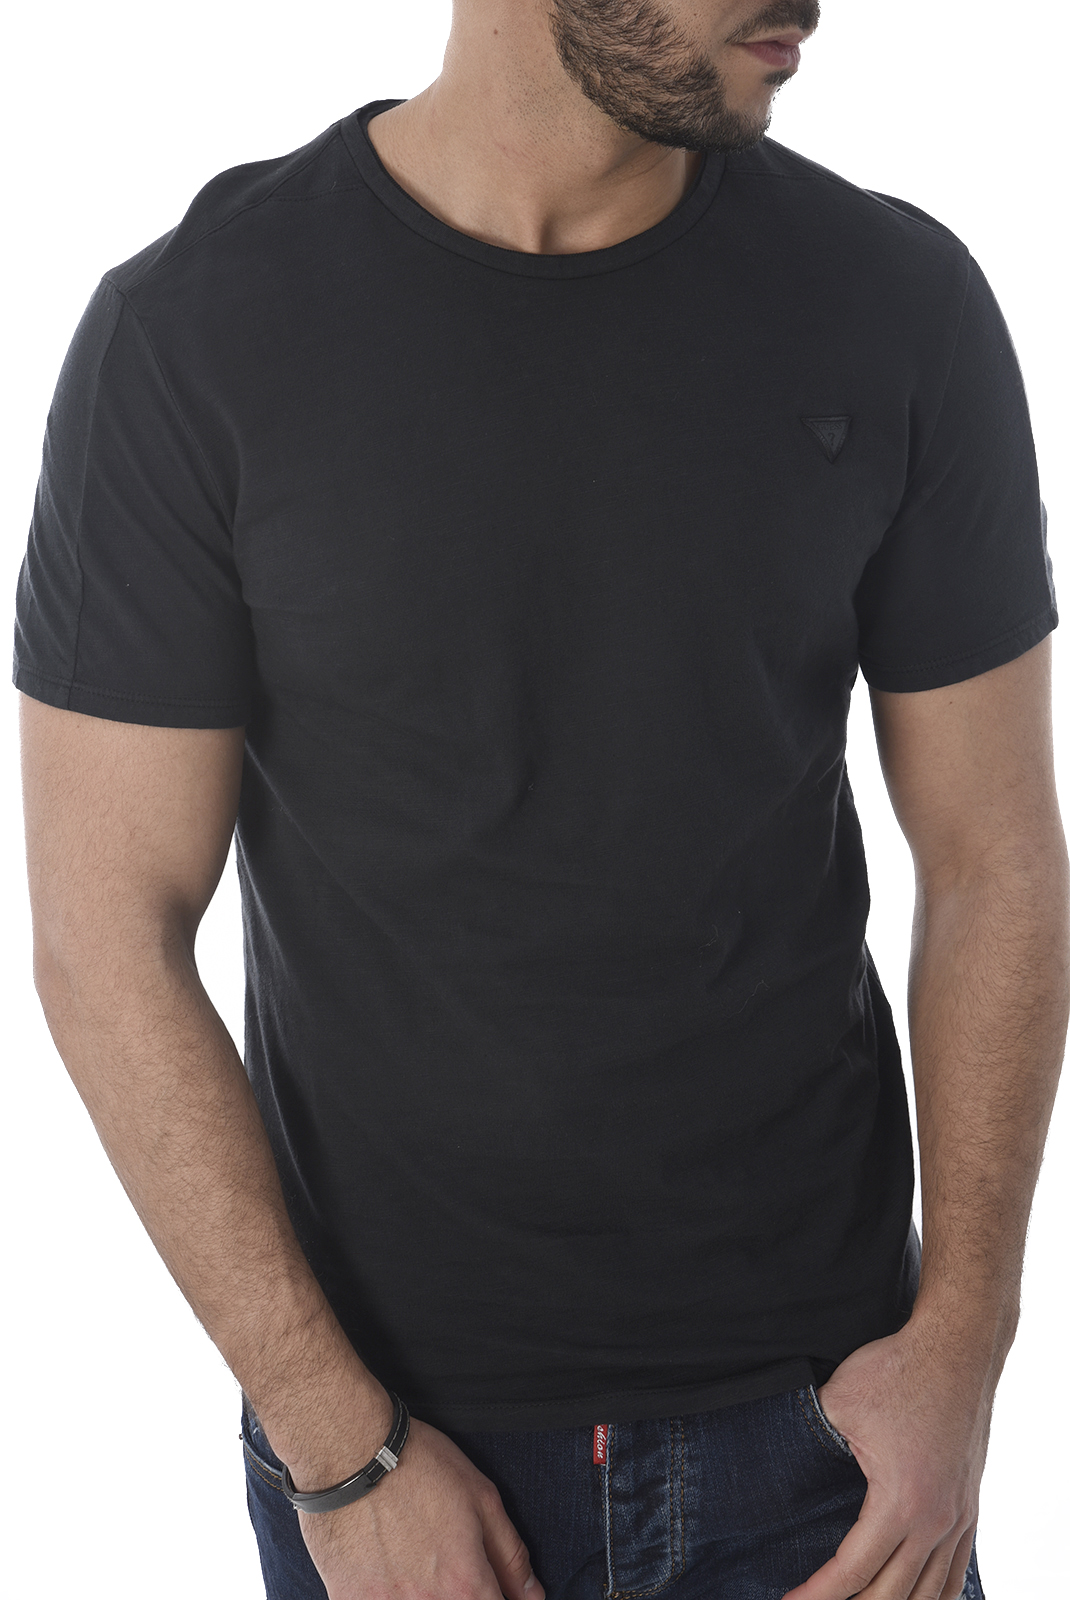 Tee-shirts manches courtes  Guess jeans M82I10 K6XN0 F9P1 BLACK